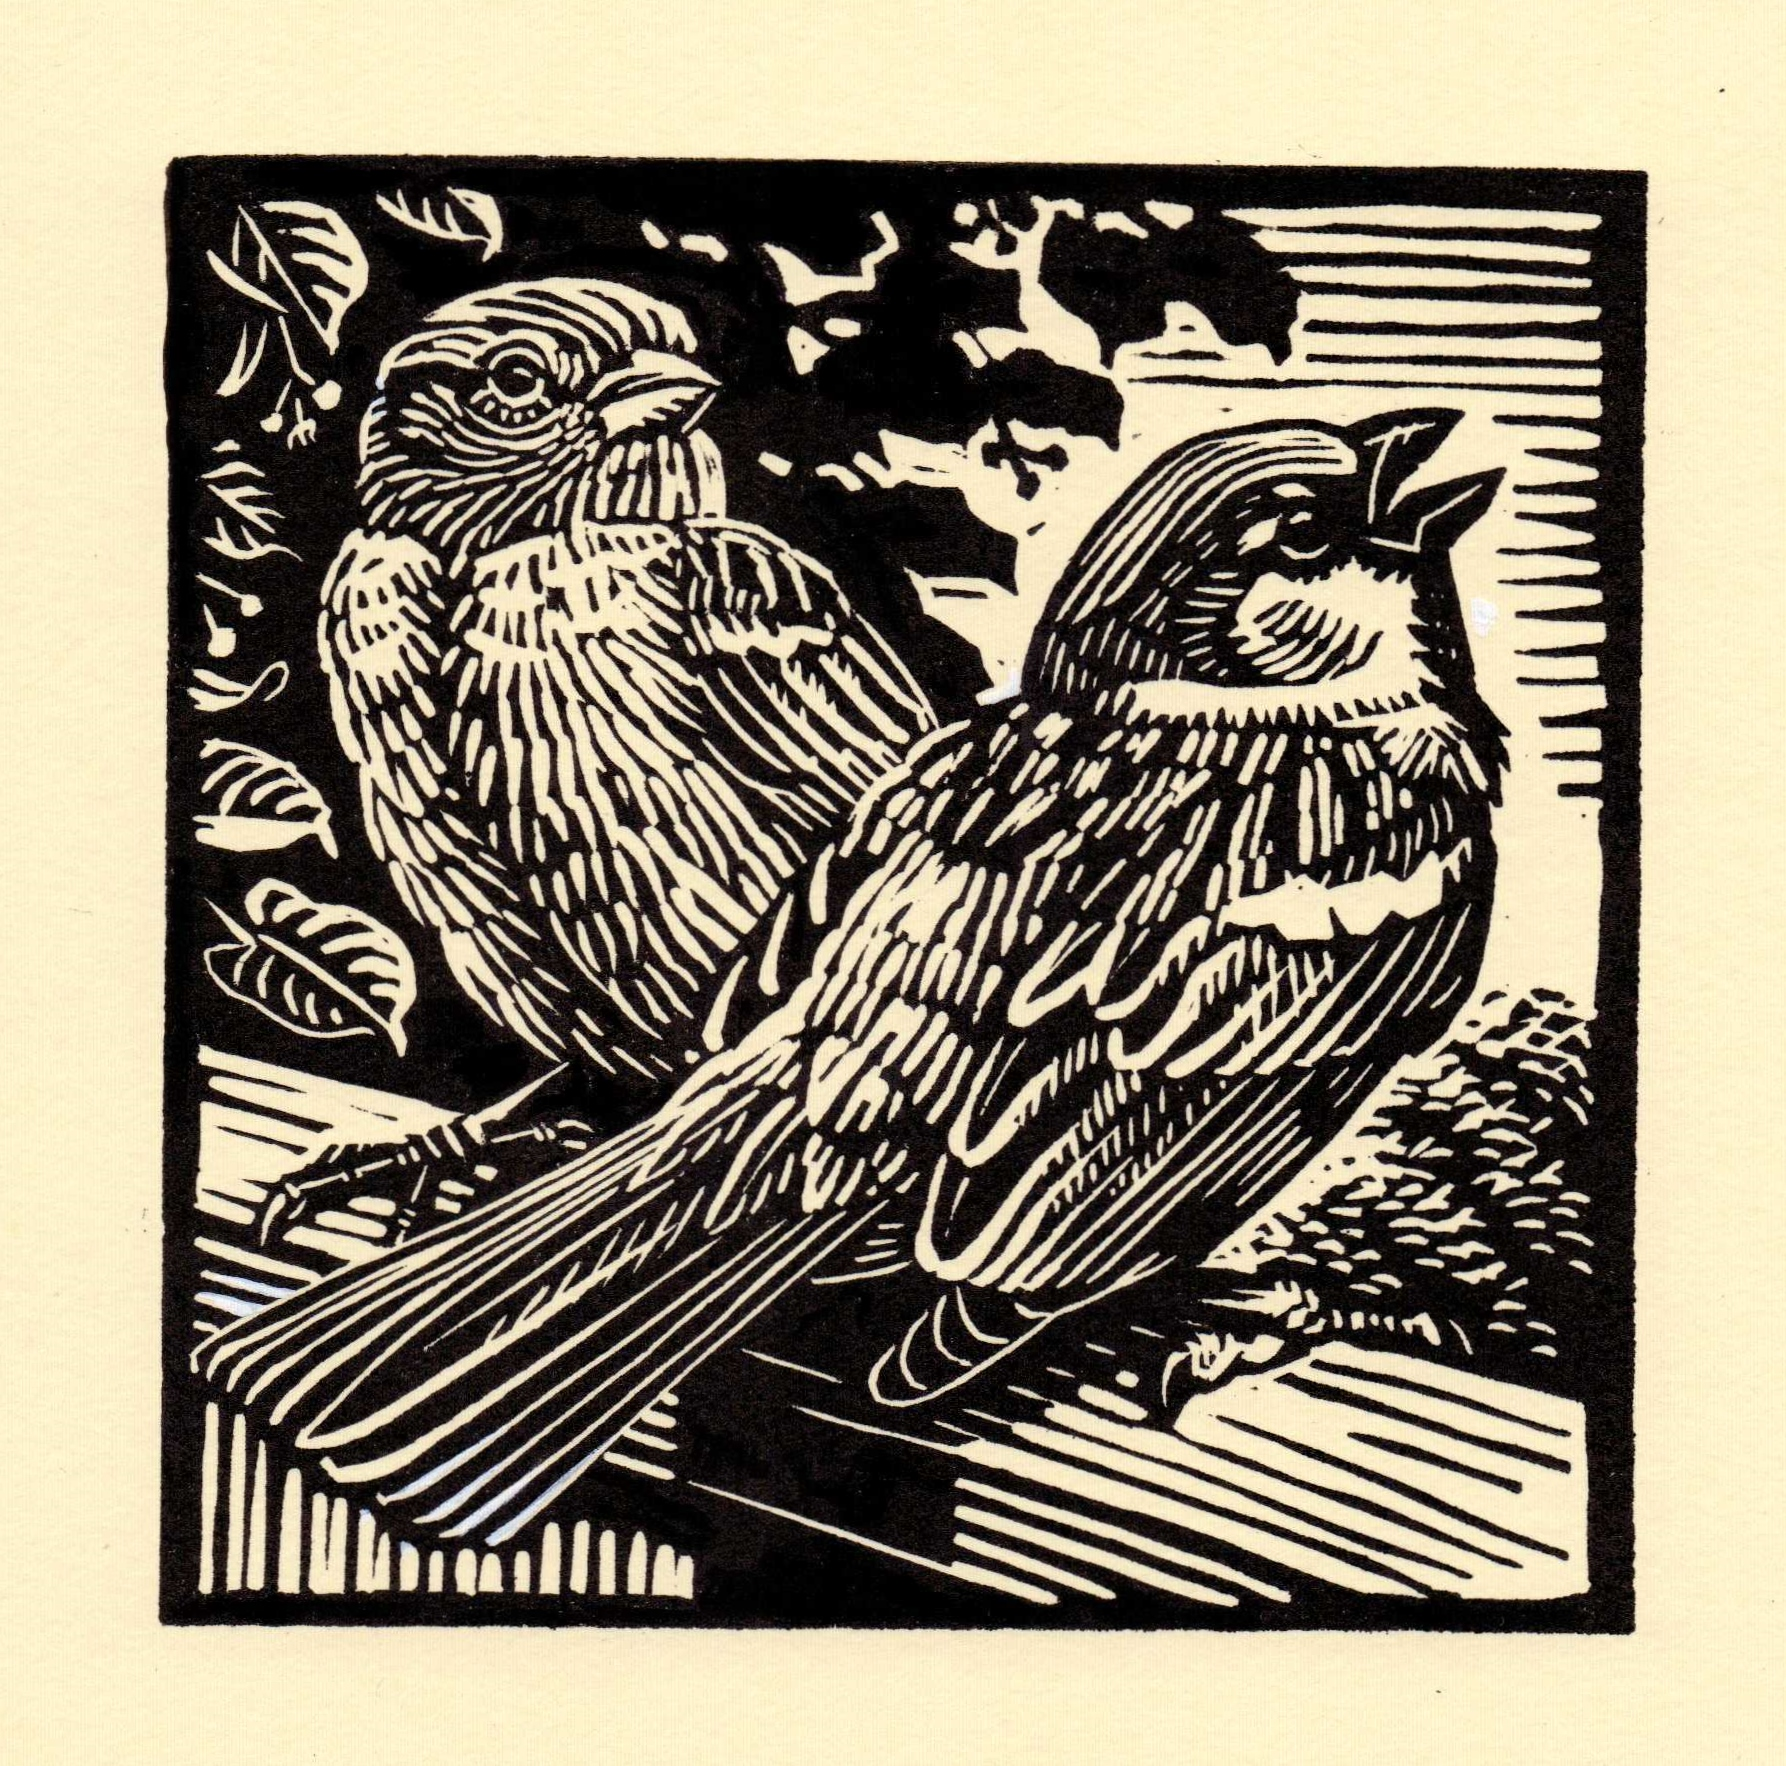 House Sparrow   linocut   £125 framed  £85 unframed